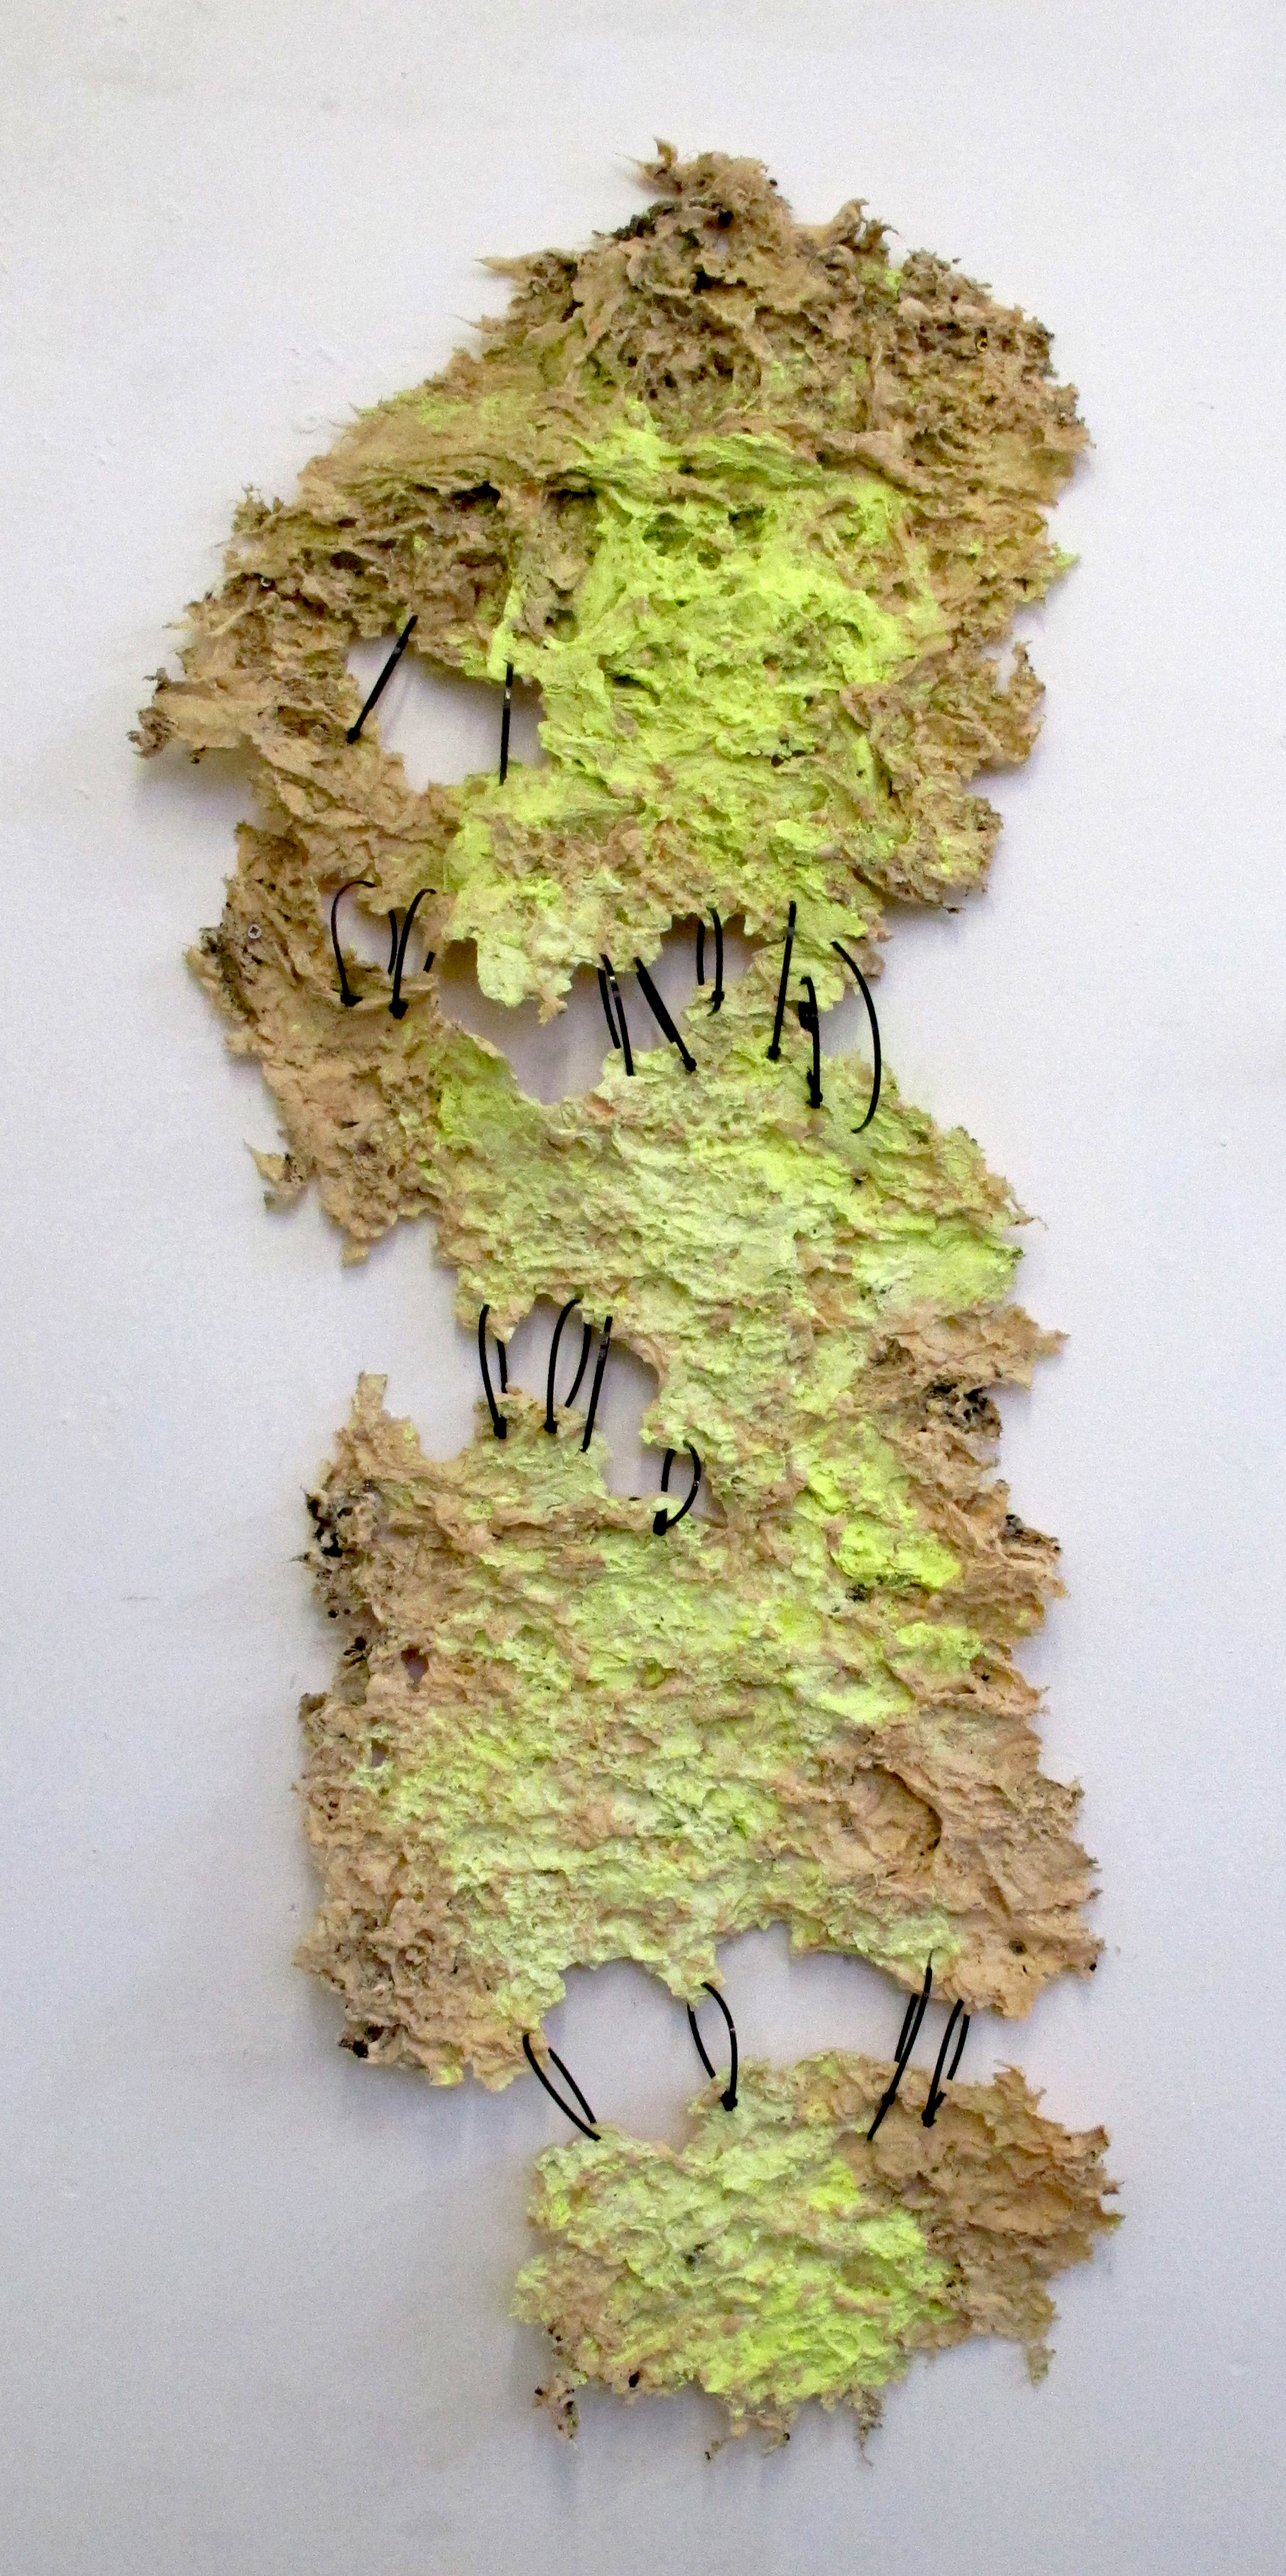 Untitled, silicone, pigment, cable ties, 130 x 49 x 4 cm